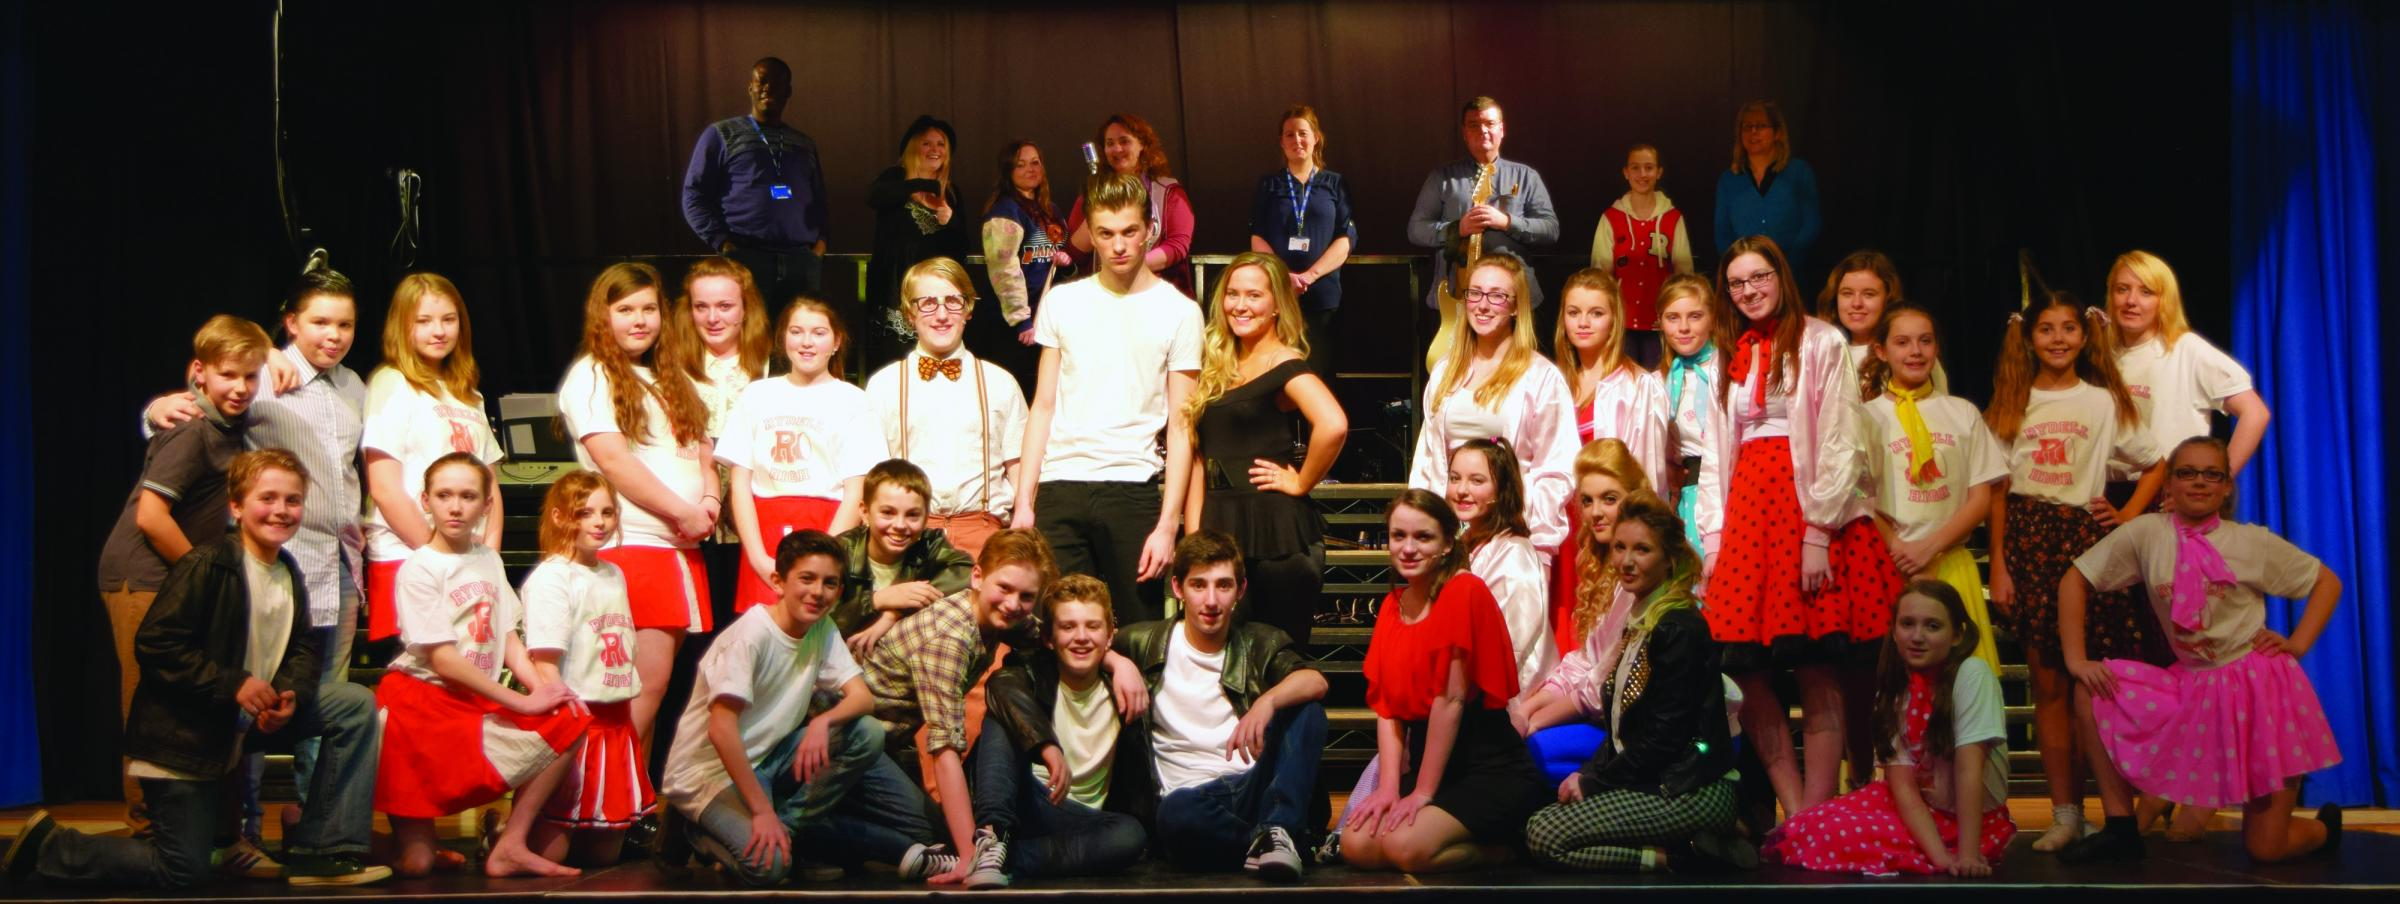 Students celebrate theatre production